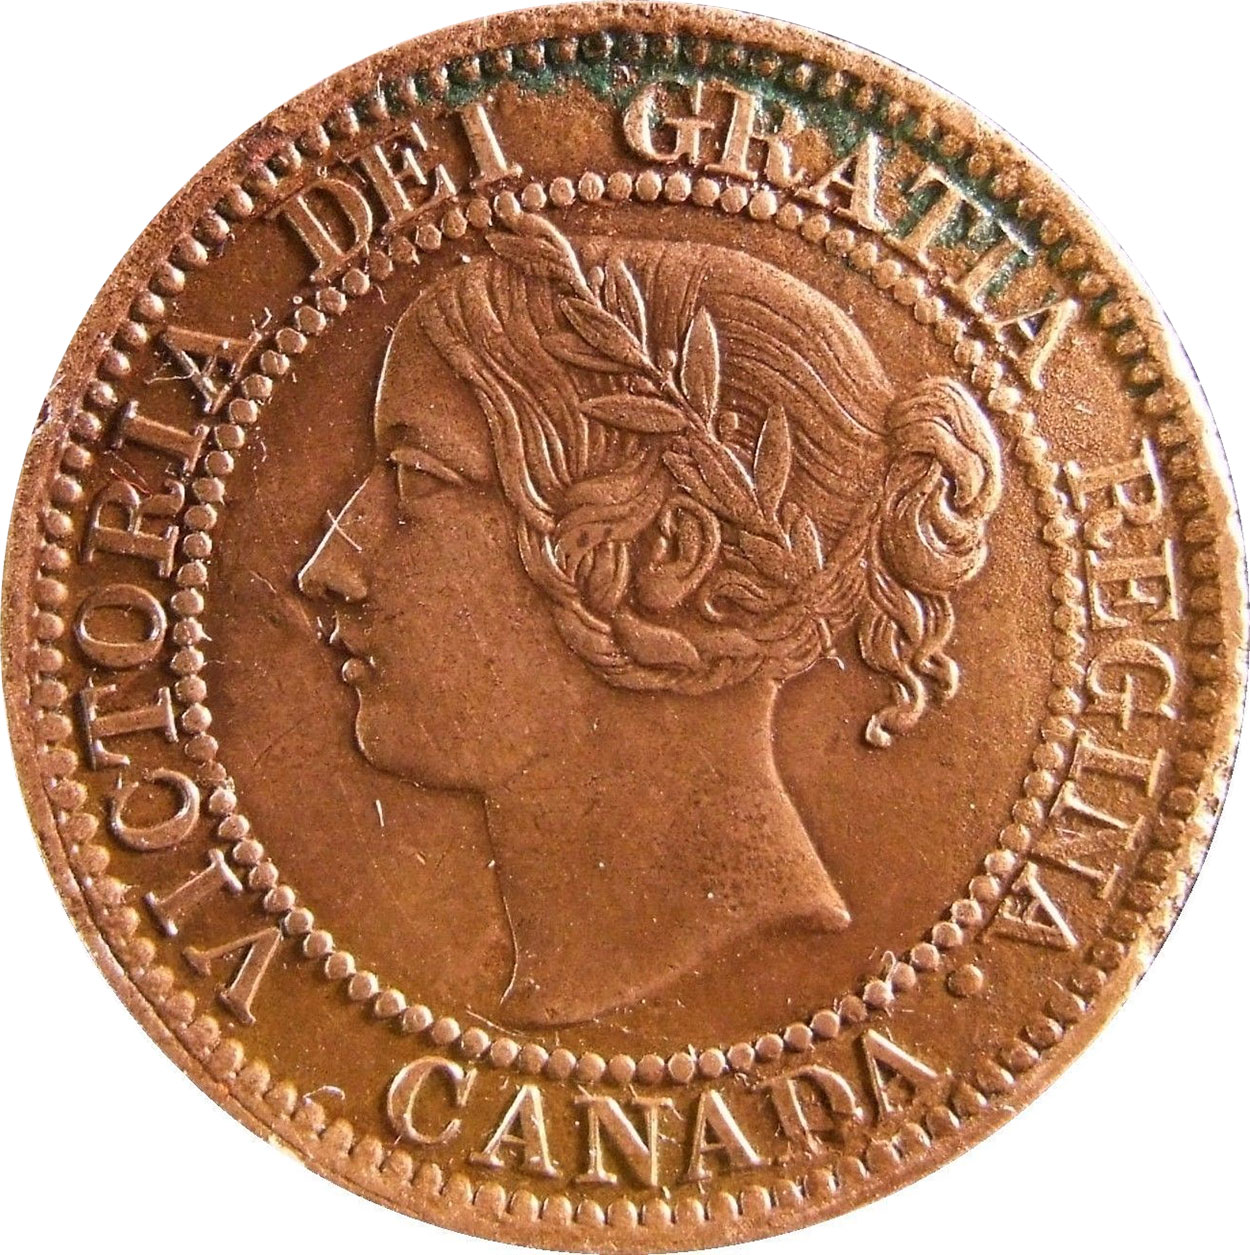 EF-40 - 1 cent 1858 and 1859 - Victoria